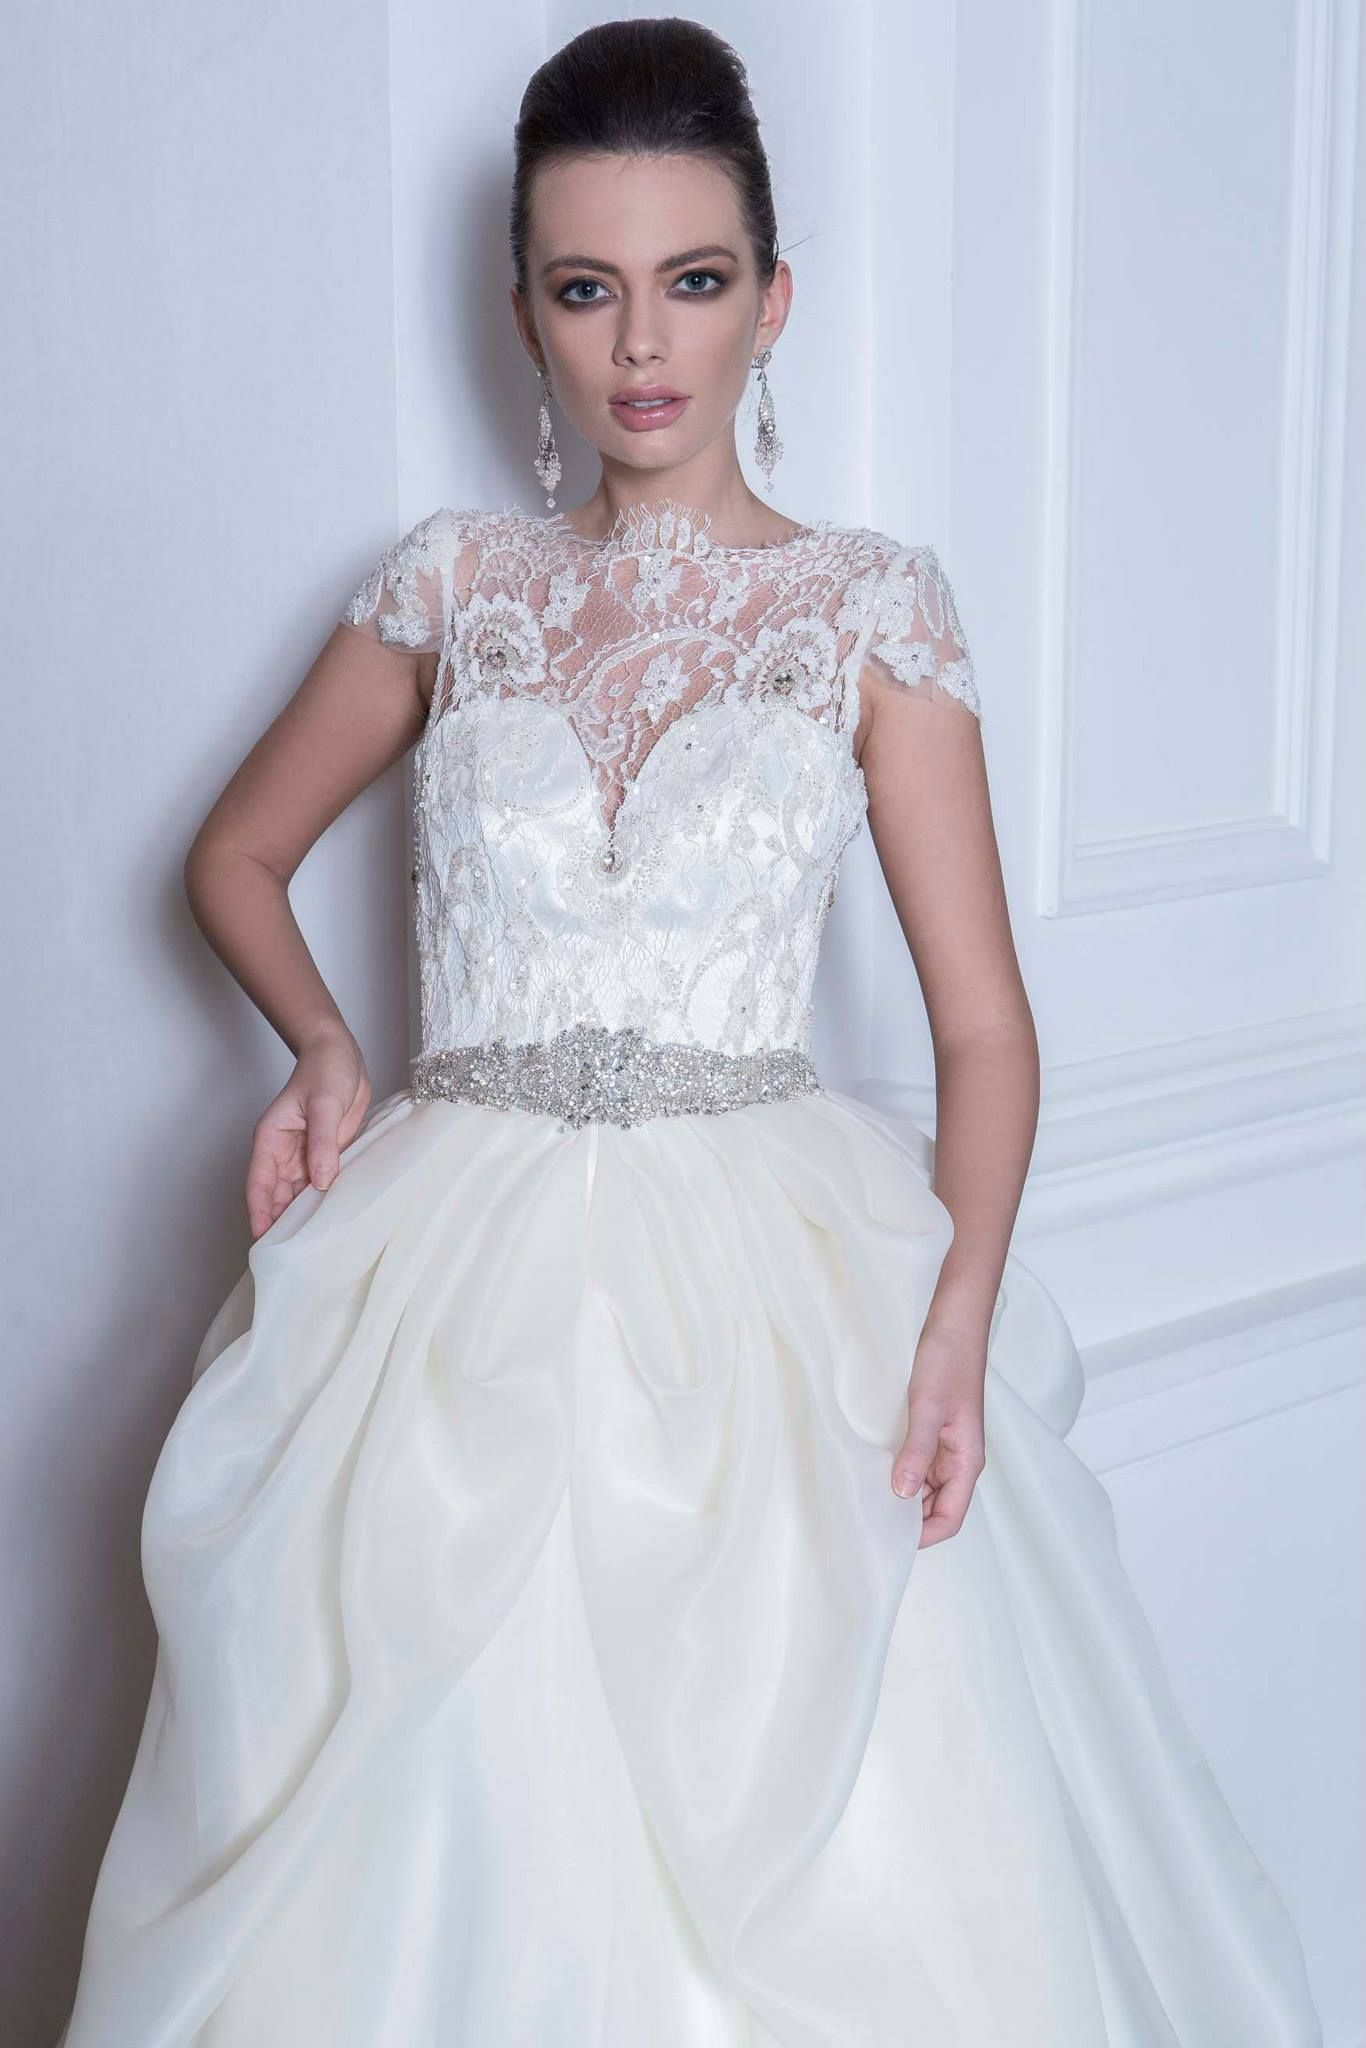 1500 144 Romantique Collection By Andree Salon Photographer